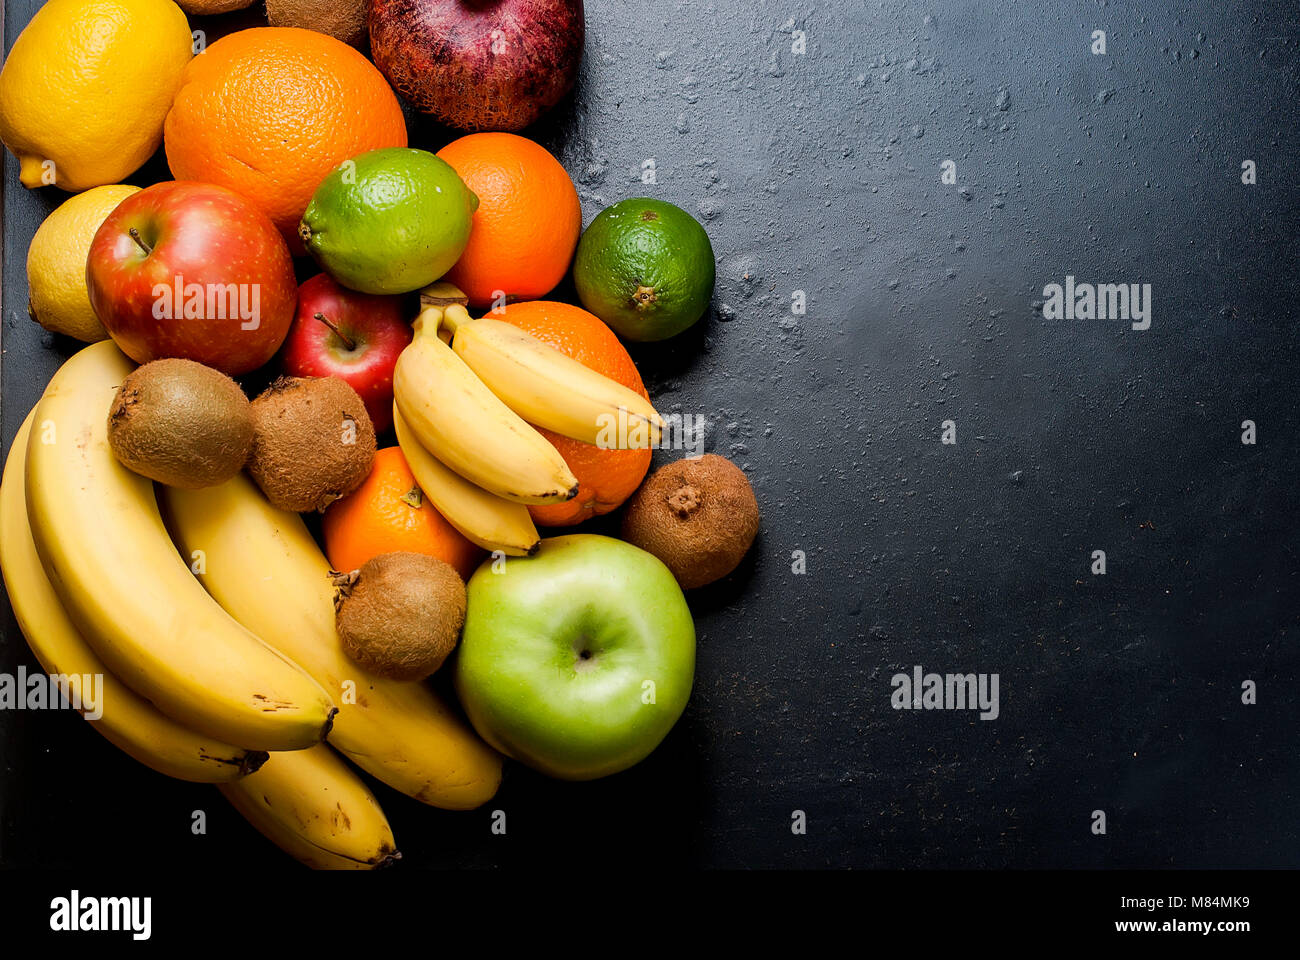 Variety of fresh citrus fruits on dark background from slices of kiwi, bananas, aplle and orange ,copy space - Stock Image